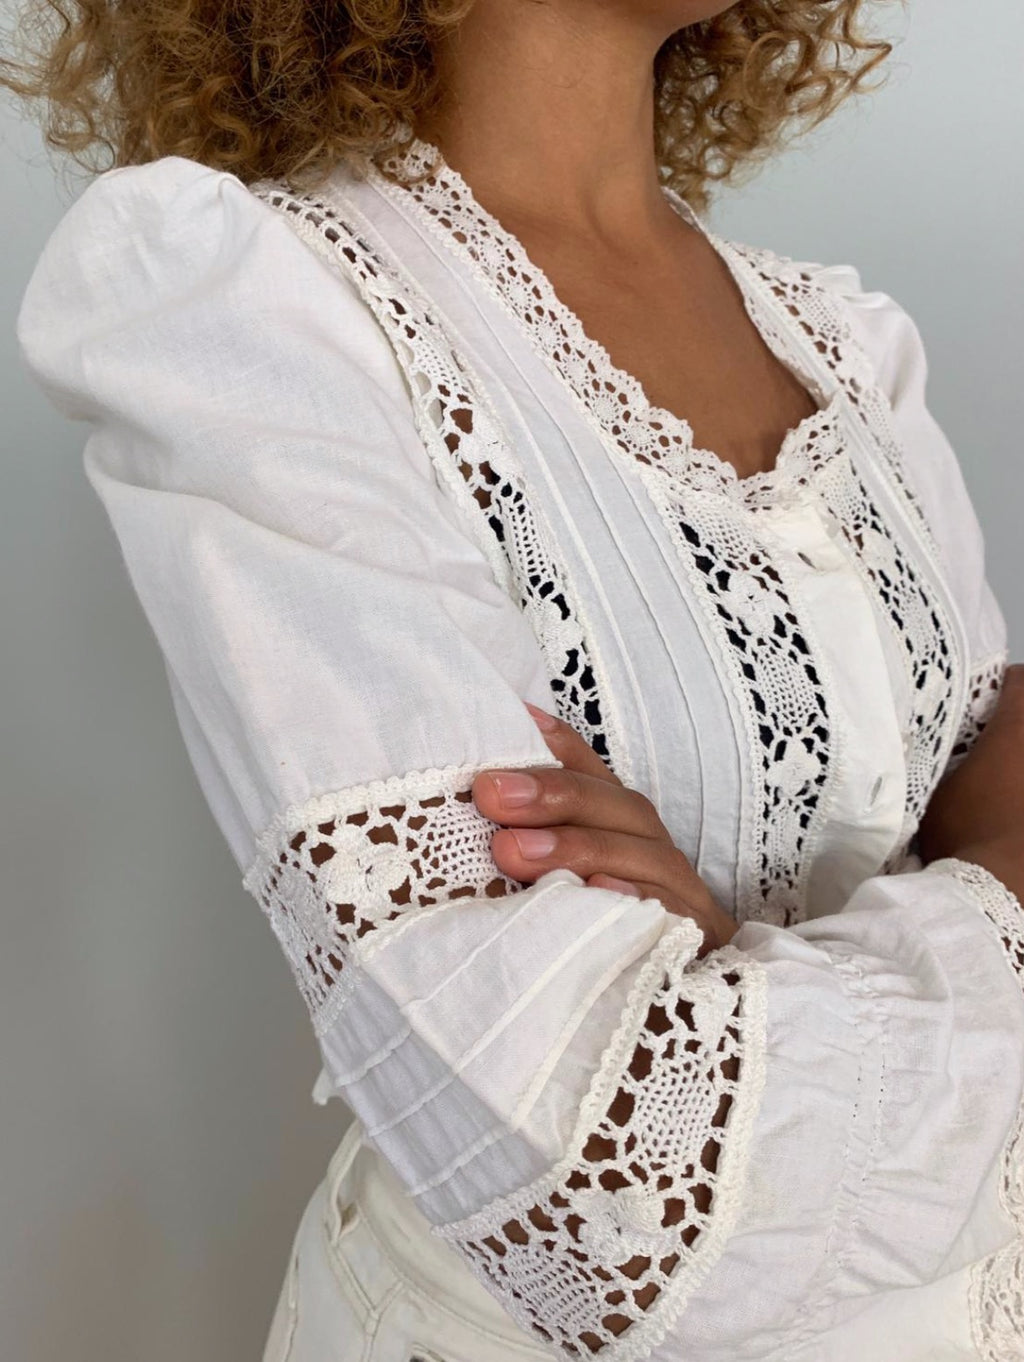 Laura Ashley 1970's linen and lace blouse